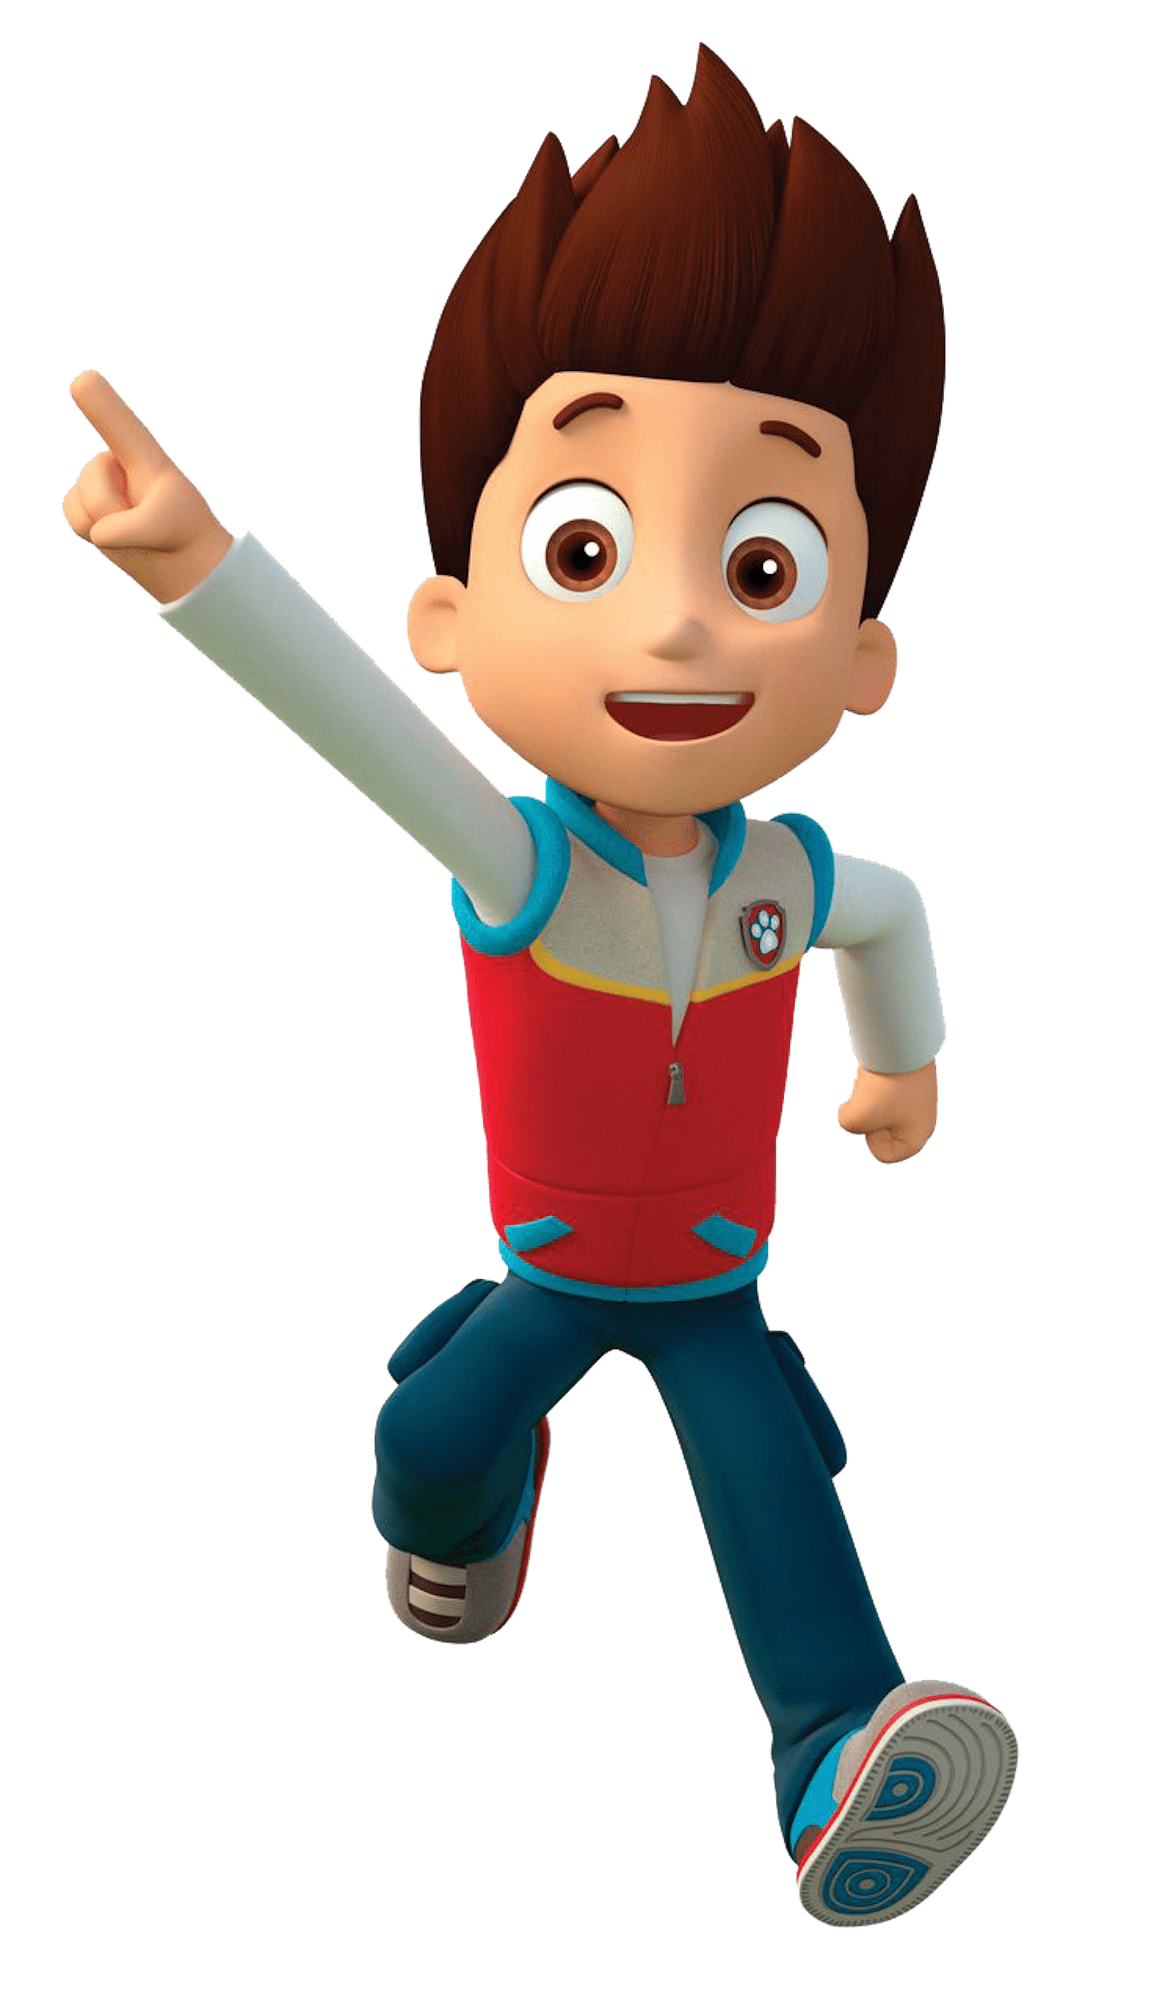 Paw patrol clip art jpg royalty free library Paw Patrol Clipart at GetDrawings.com | Free for personal use Paw ... jpg royalty free library